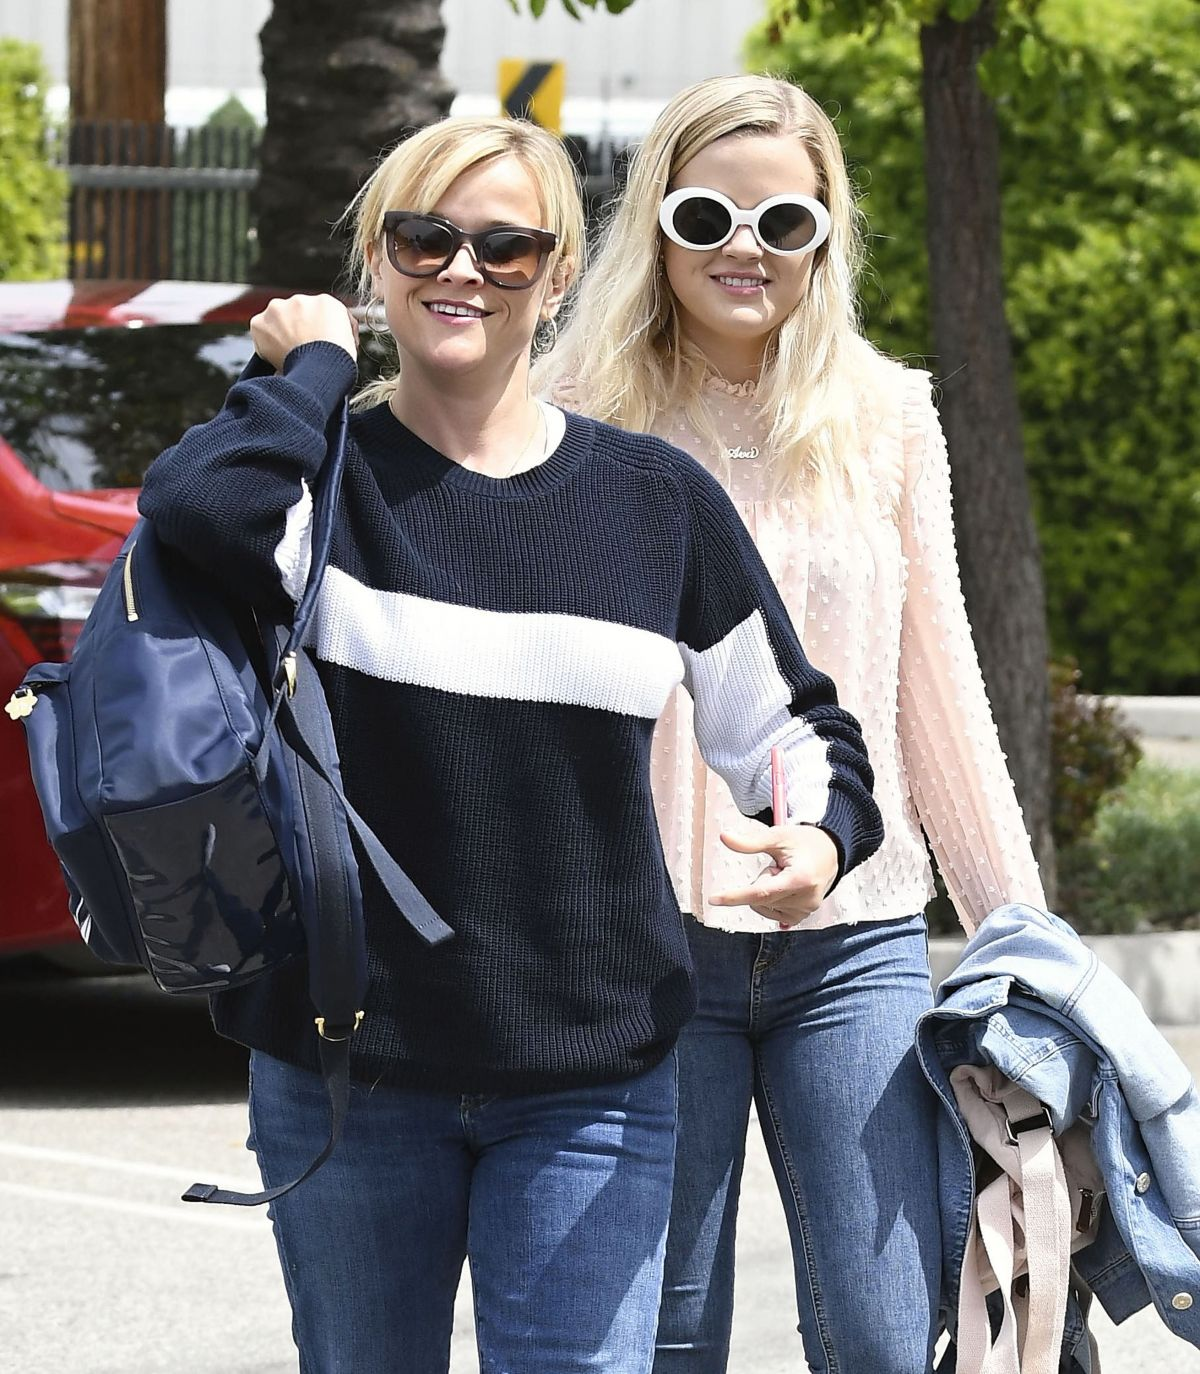 REESE WITHERSPOON and AVA PHILLIPPE After A Helicopter Trip in Santa Monica 04/11/2017